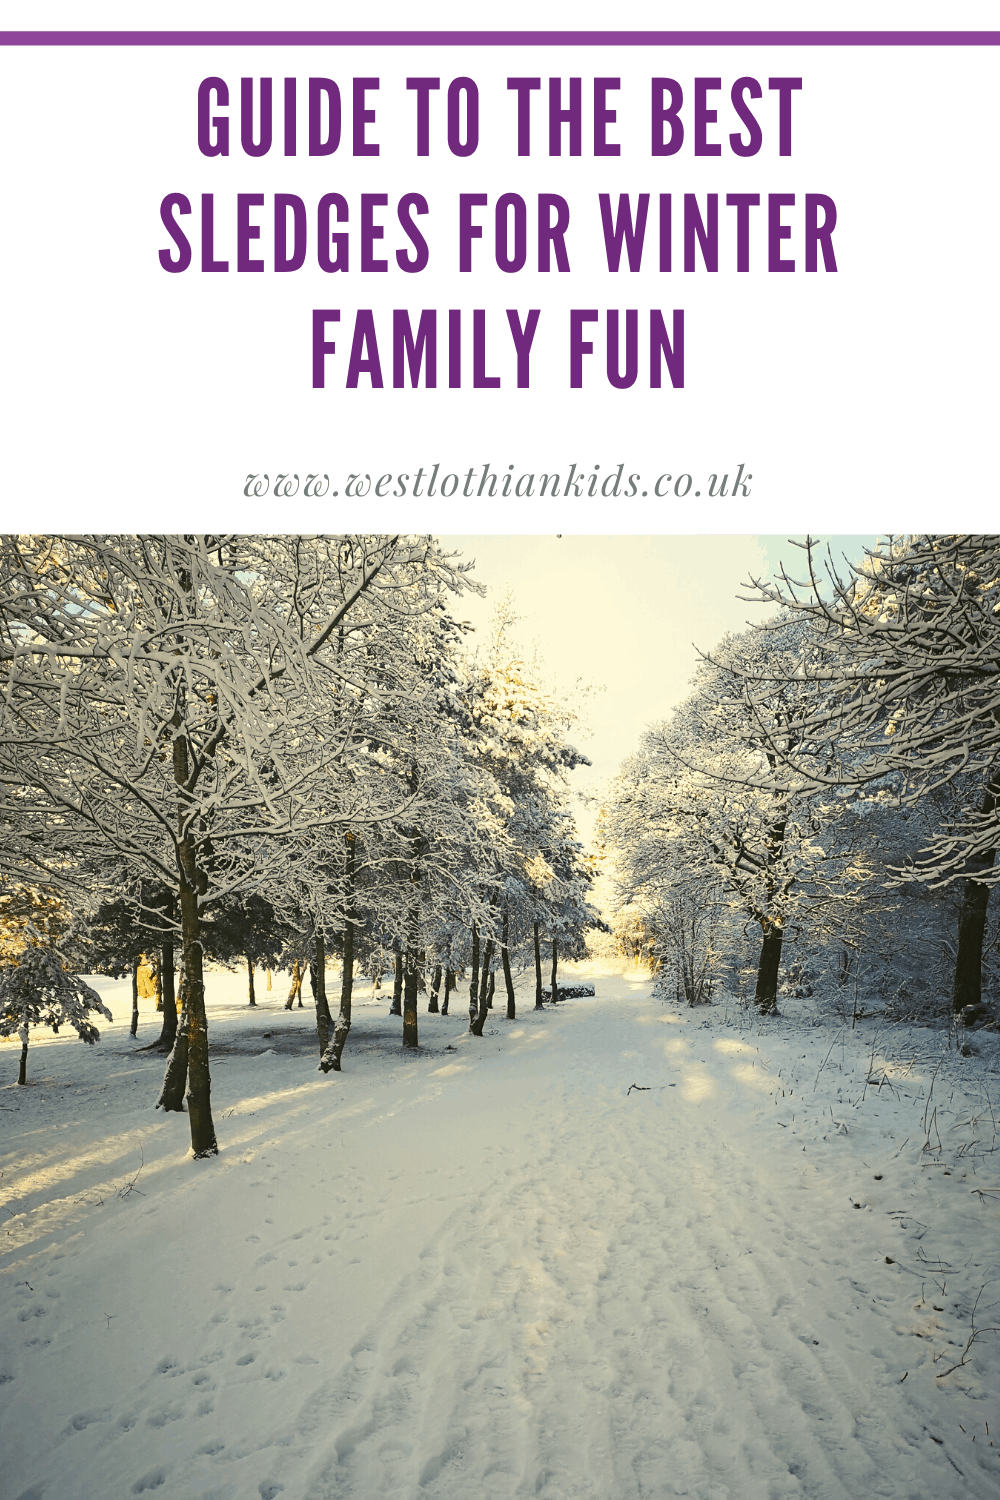 Guide to the best sledges for winter family fun